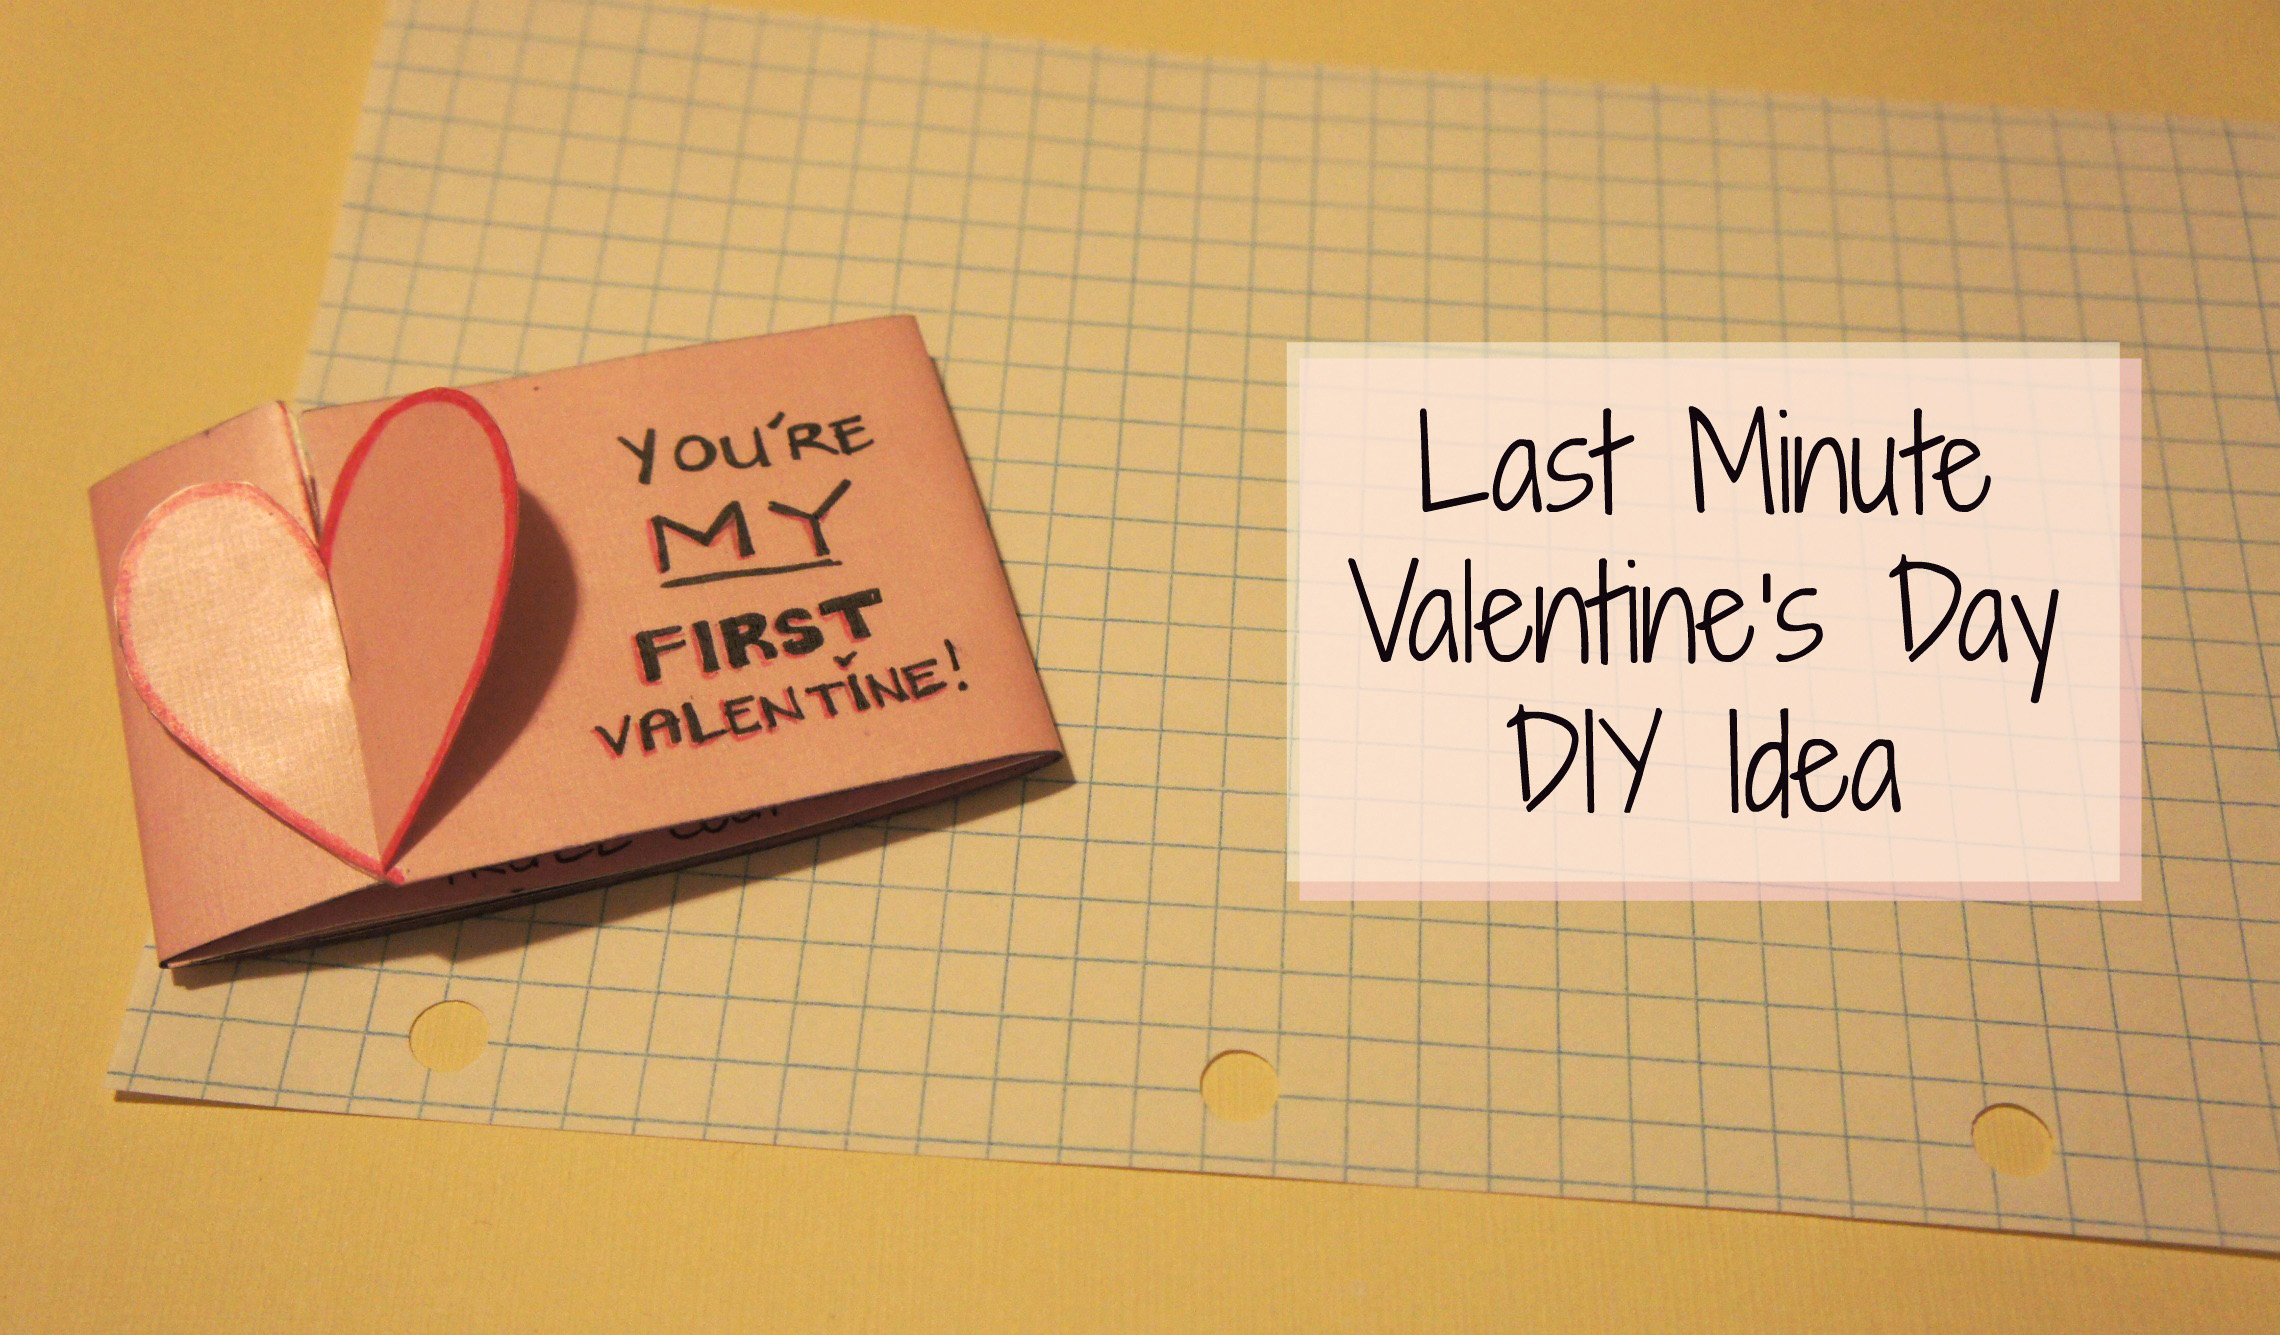 First Valentines Day Gifts - Best Seller Gift Review